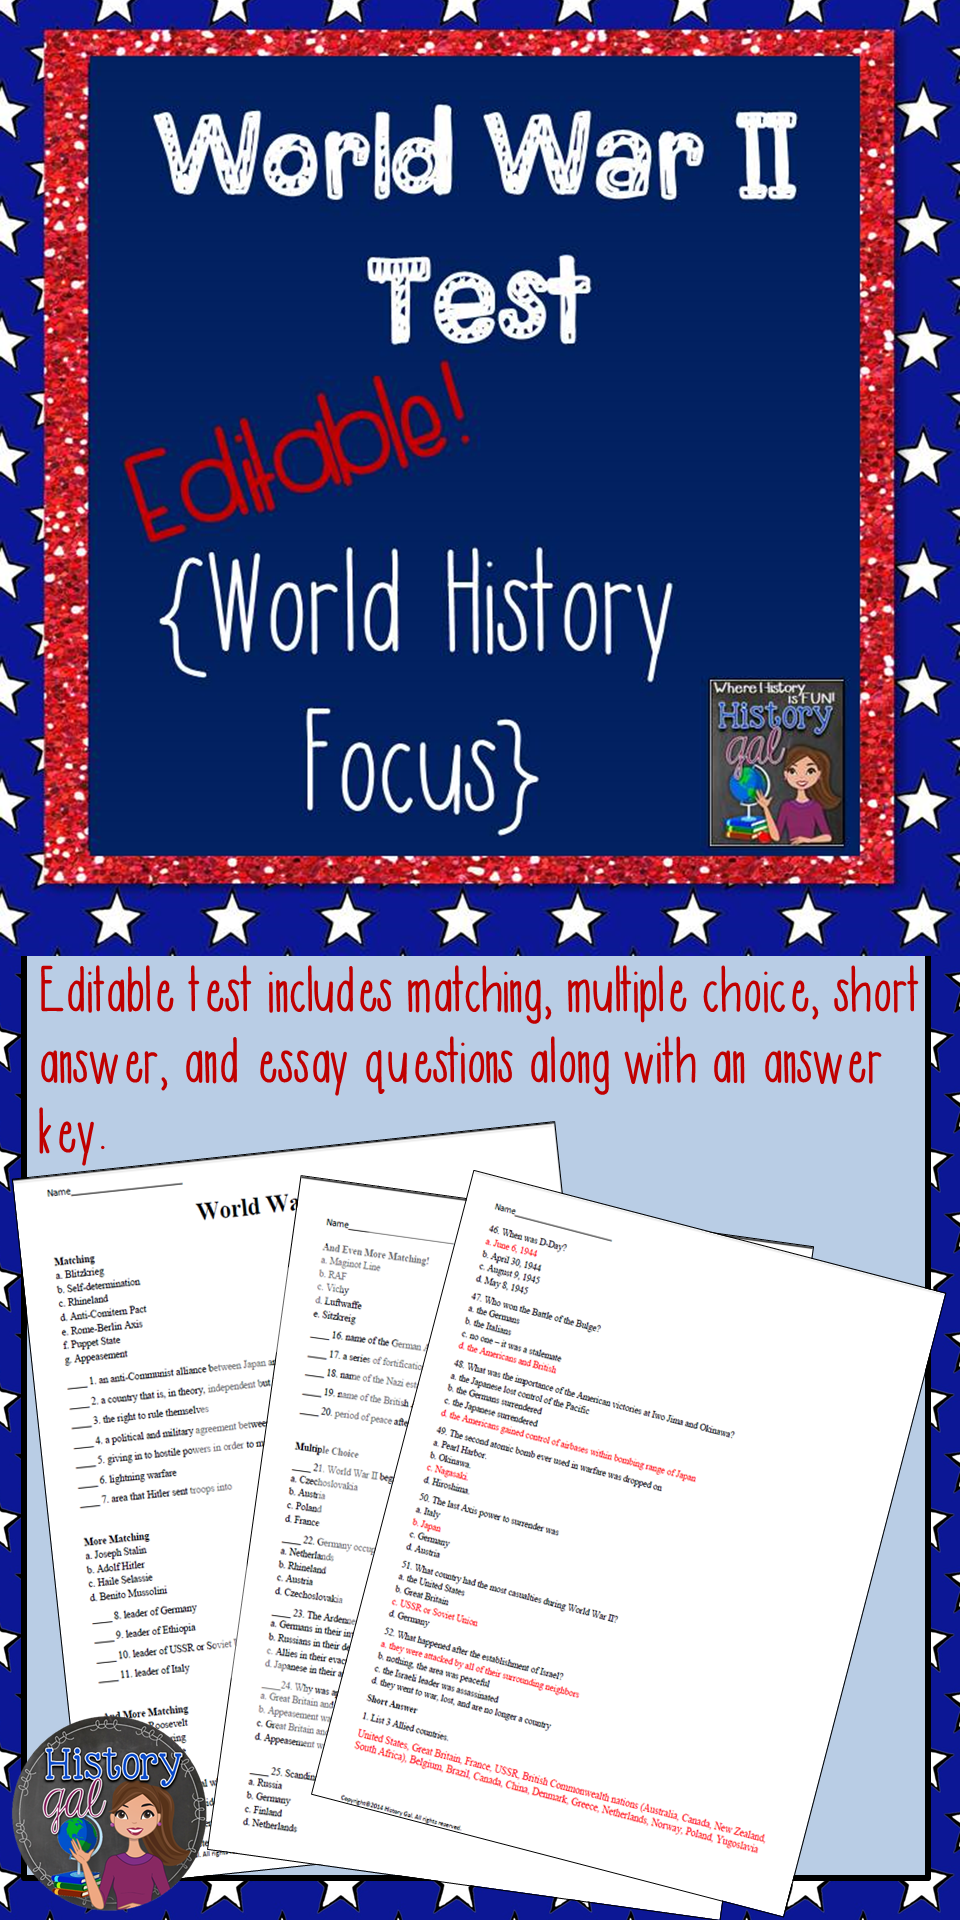 World war i essay questions cold war map activity activities keys cold war map activity activities keys and war world war ii test includes matching multiple choice gumiabroncs Images